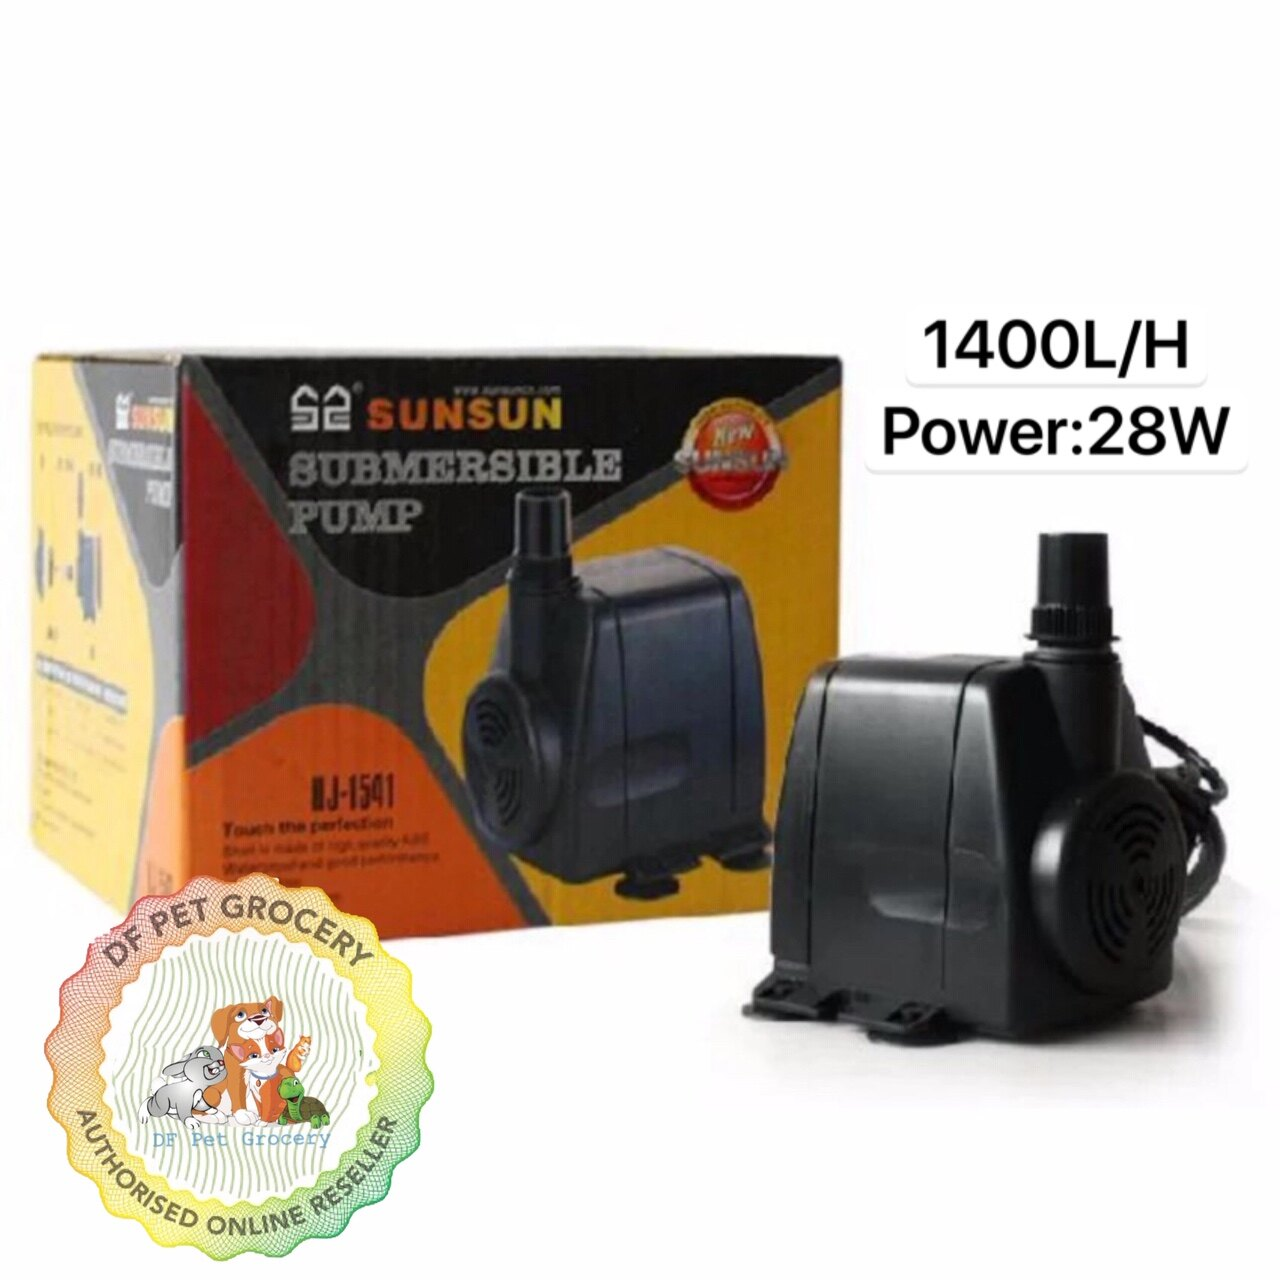 SunSun Submersible Water Pump HJ-1541 - Water Pump 1400L/H